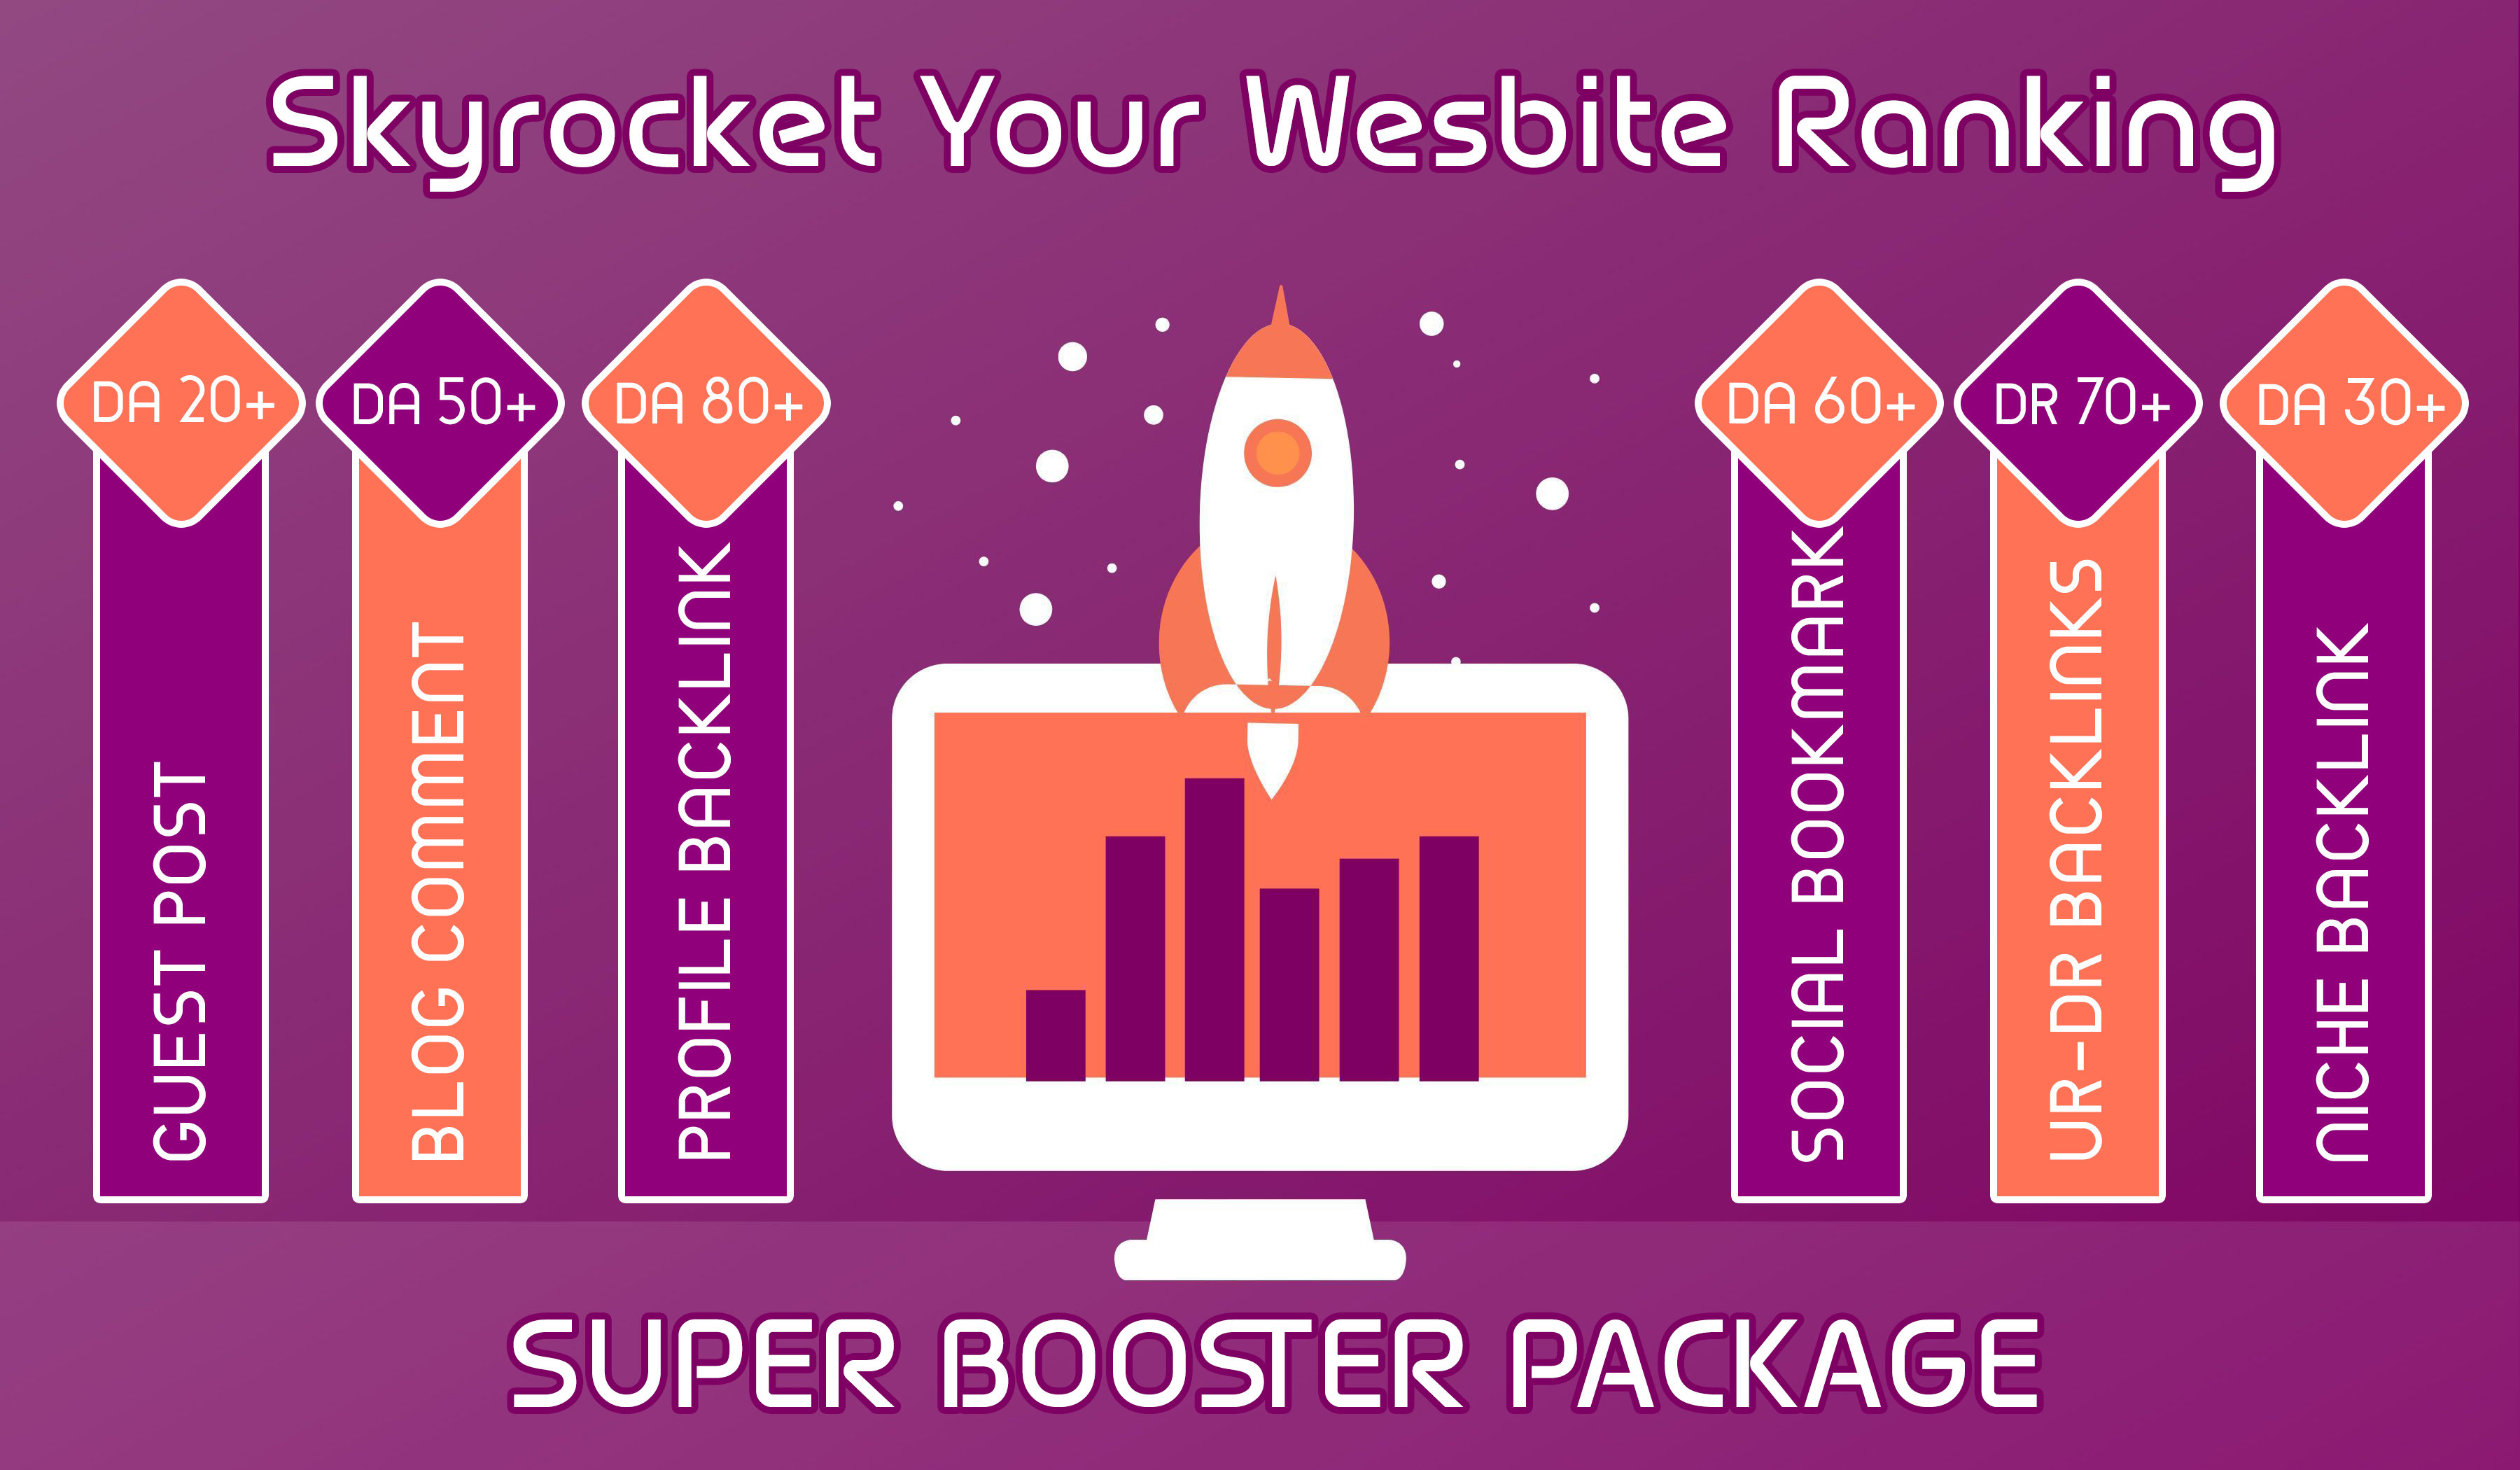 Skyrocket Your Website Ranking - Super Booster Package